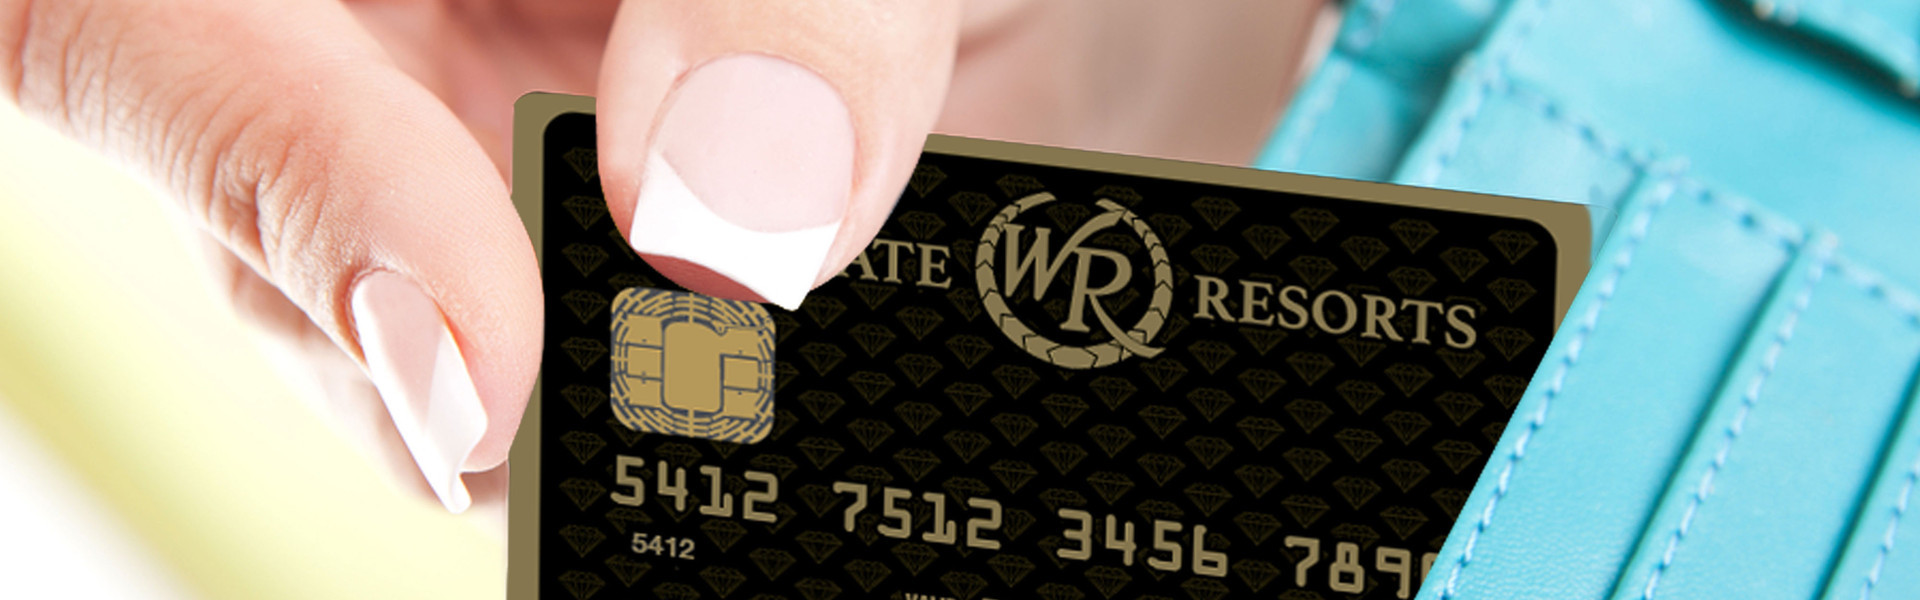 Which credit cards does Westgate Lakes Resort accept?